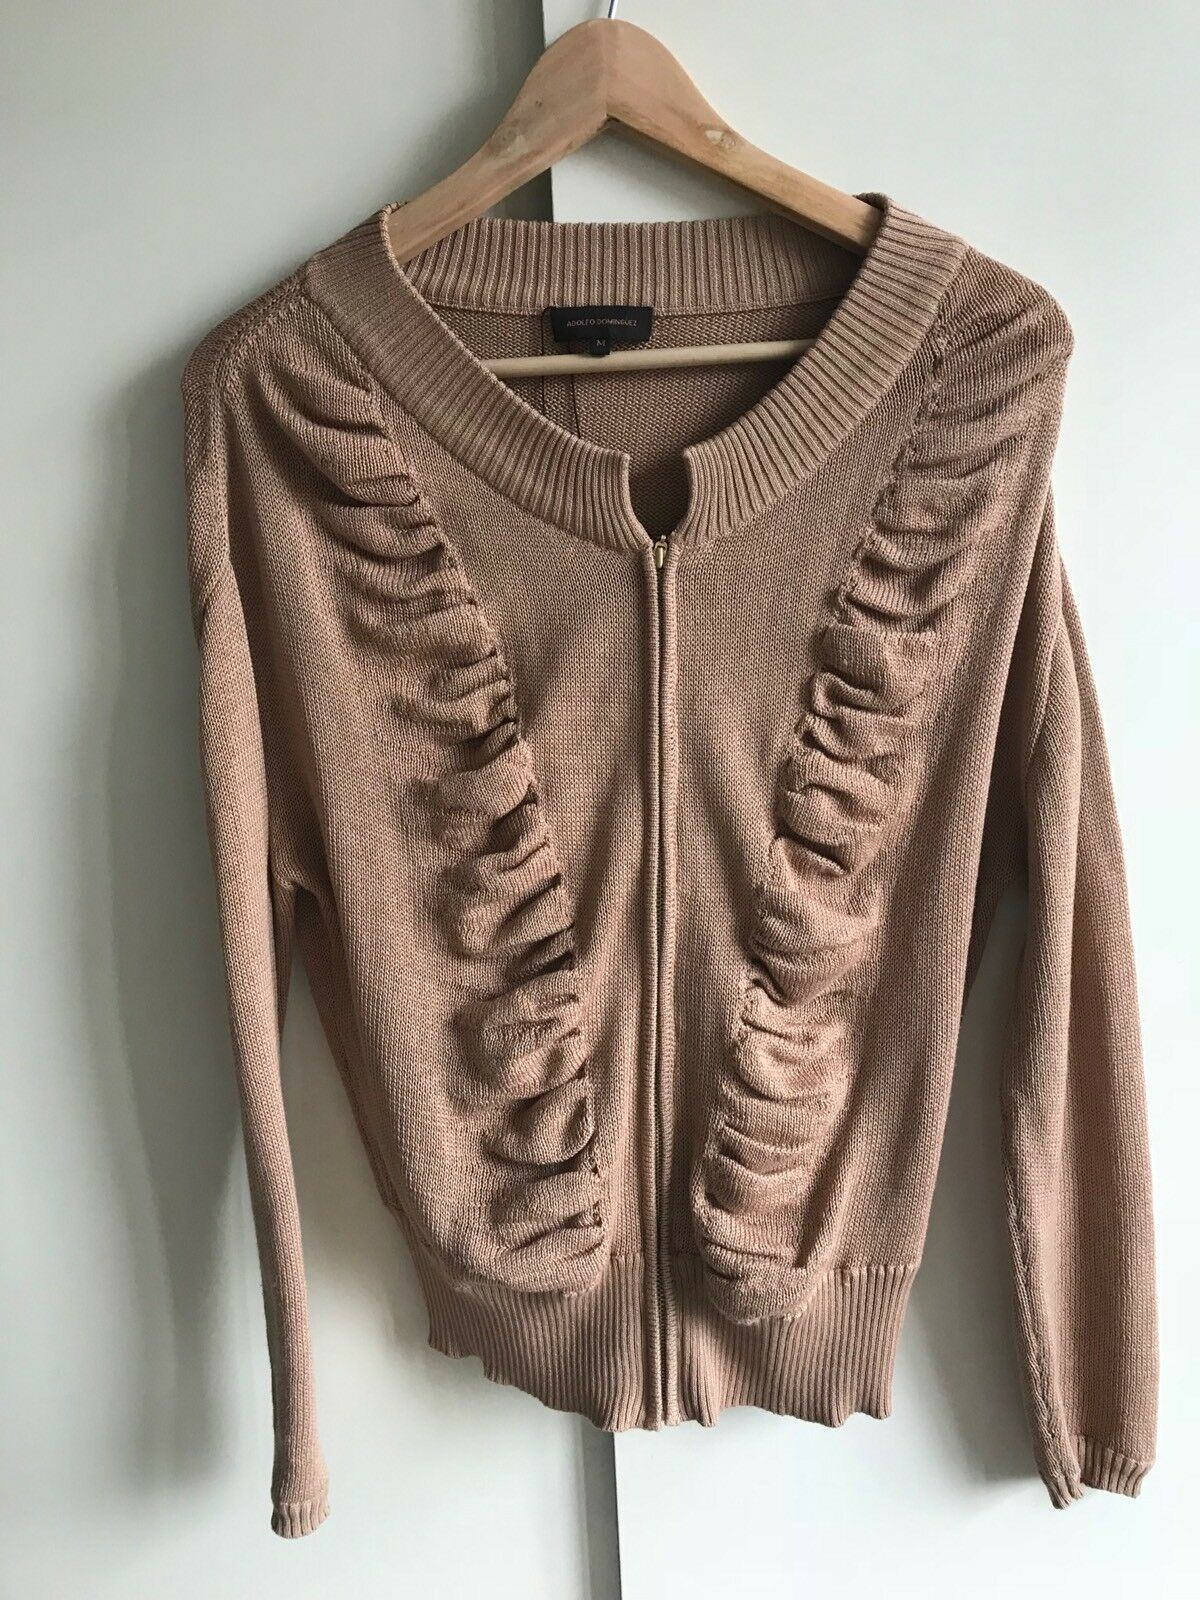 GORGEOUS ADOLFO DOMINGUEZ KNIT JUMPER Sz M WILL FIT UK Sz 10 12